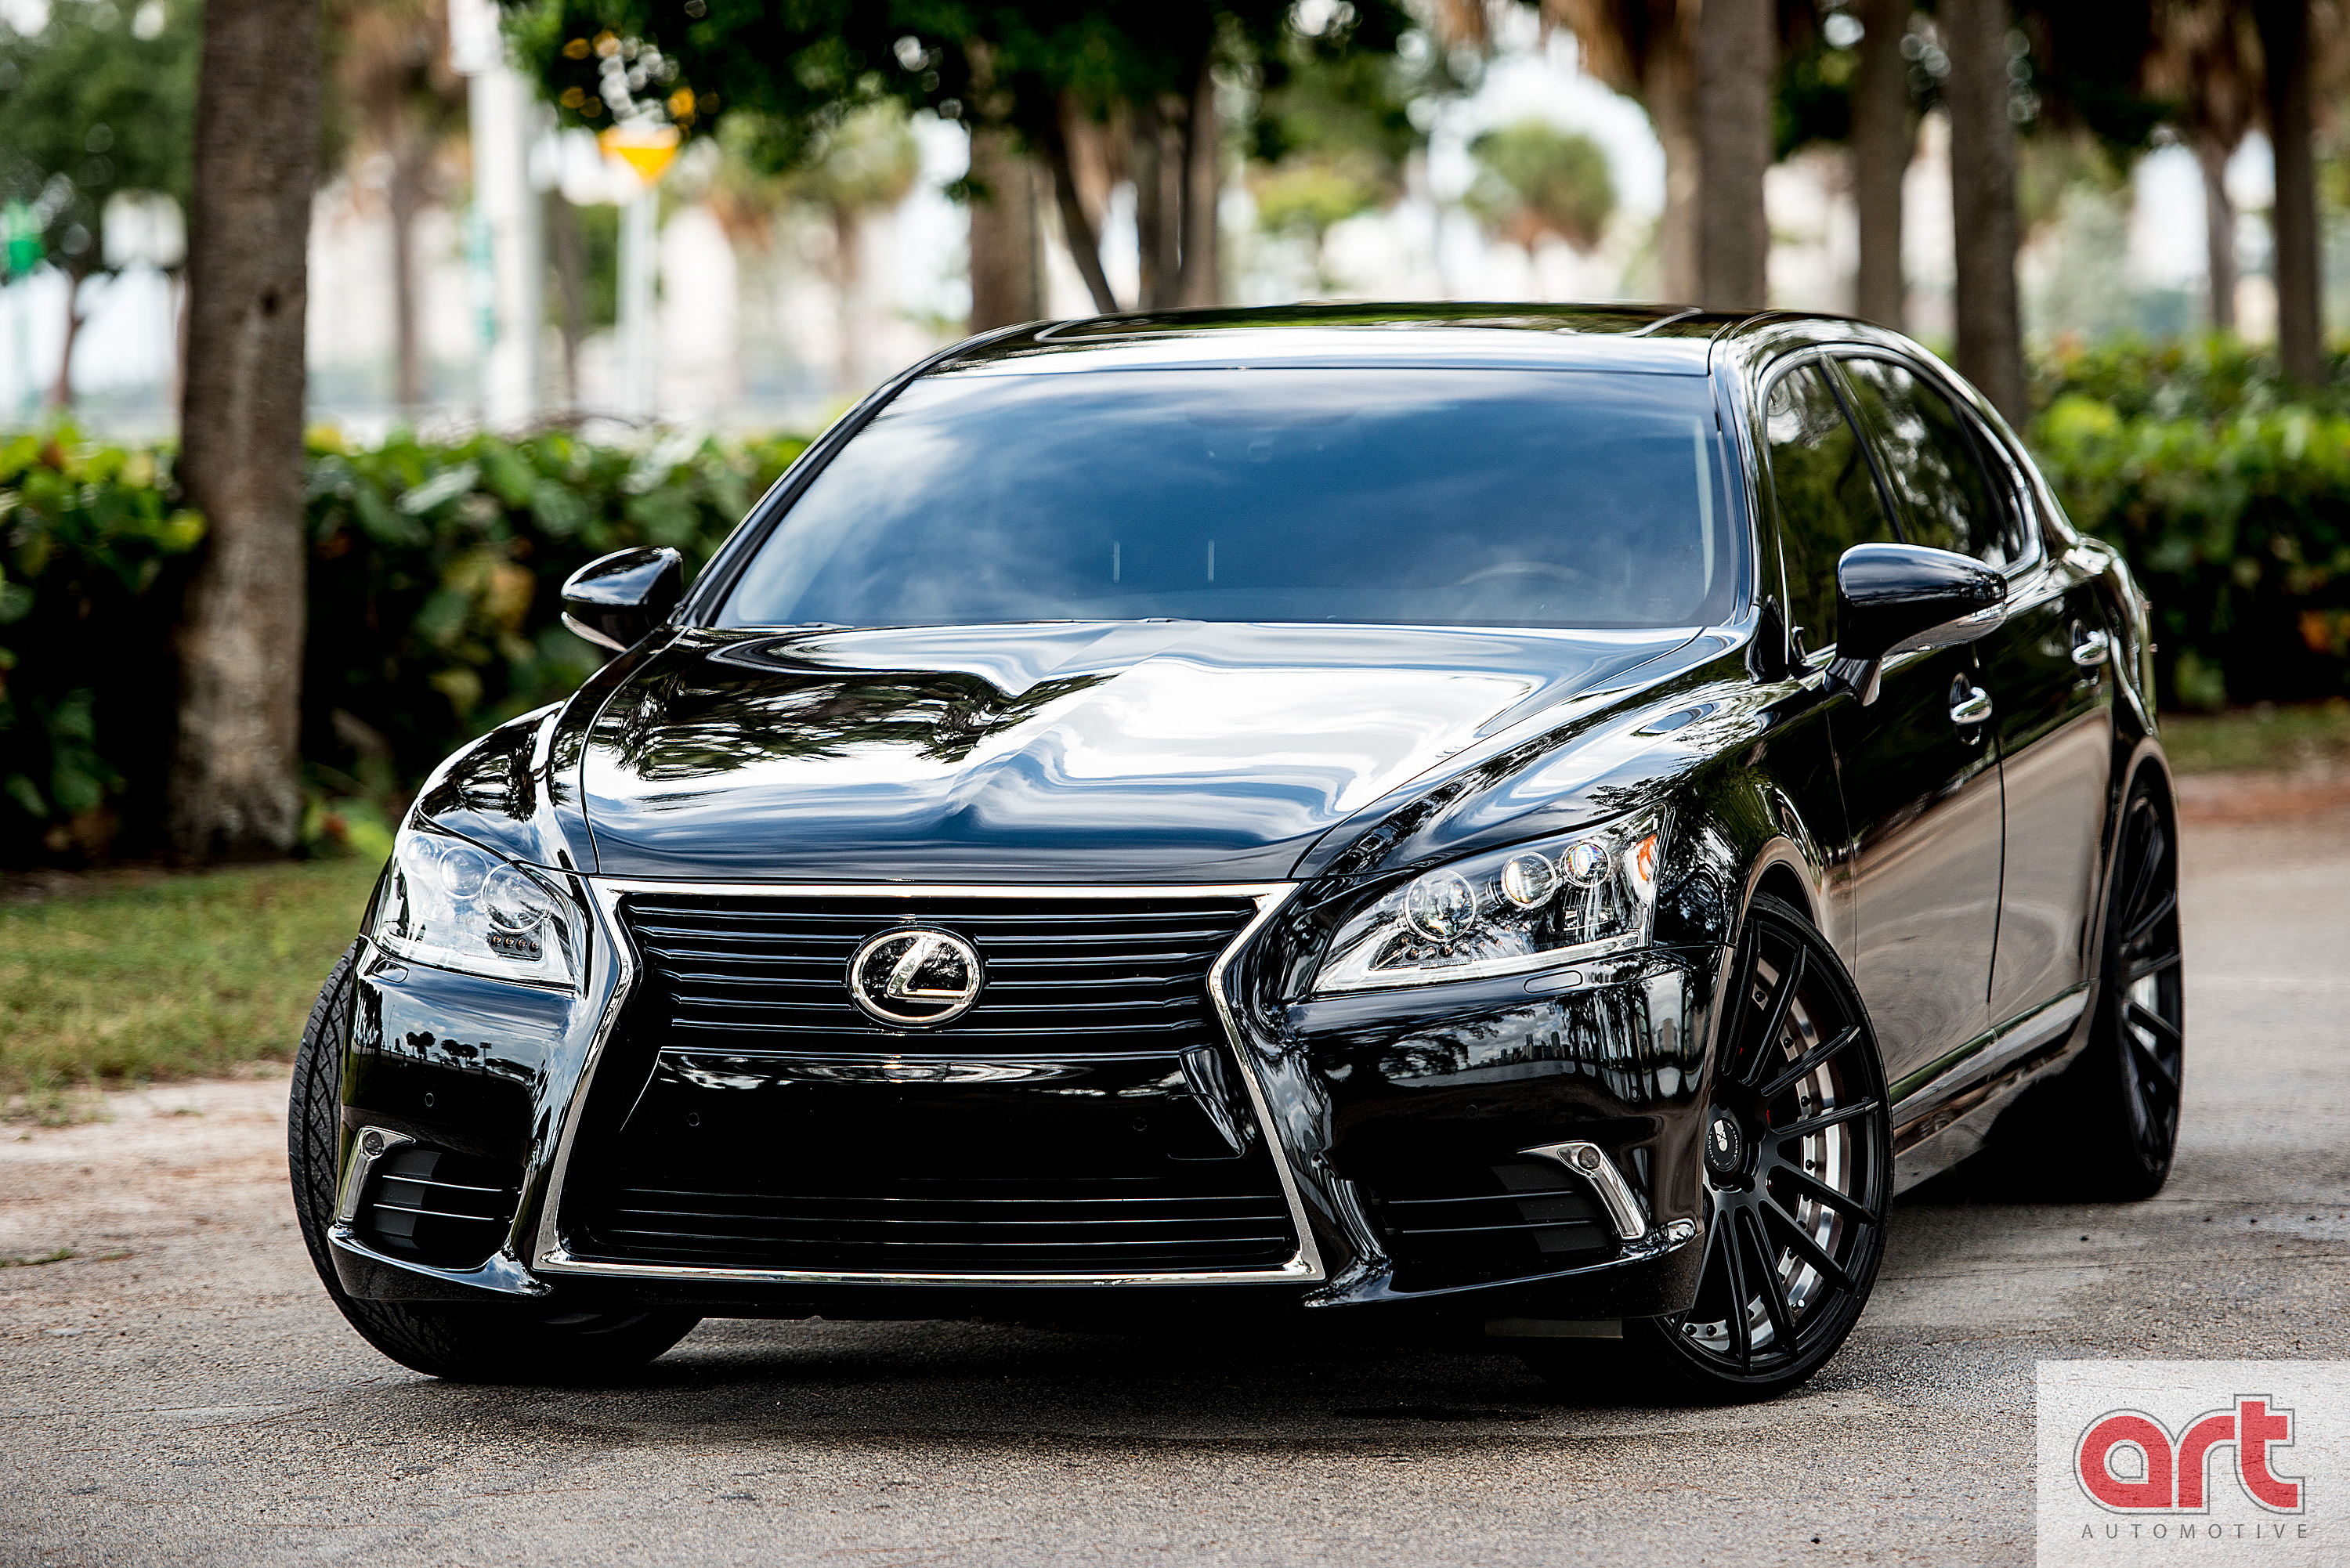 2014 Chevy Impala >> 2014 Lexus LS 460L On XO Luxury Wheels - Rides Magazine